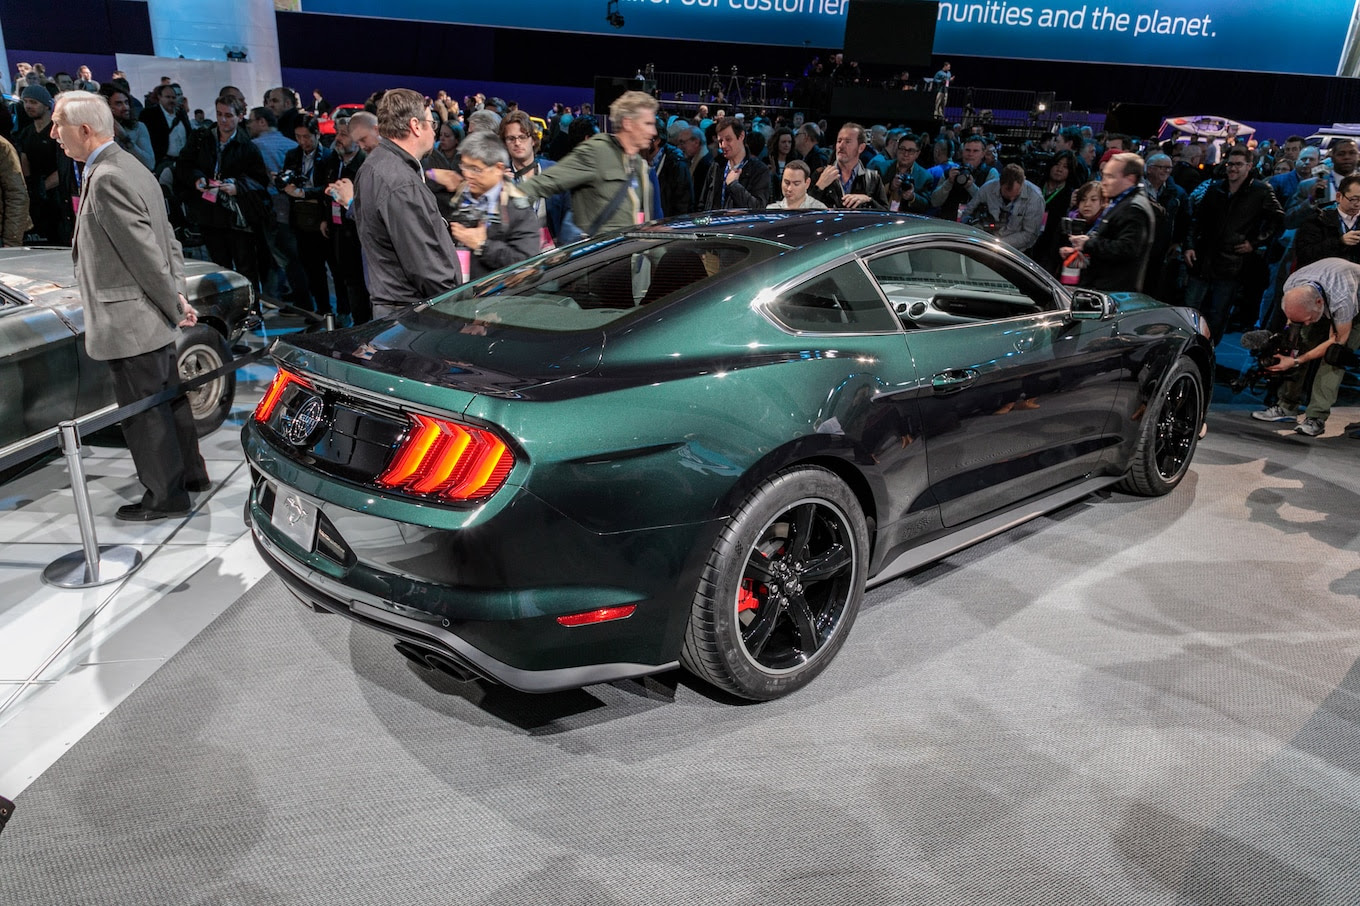 2019 Ford Mustang Bullitt First Look: Famed Car Returns ...